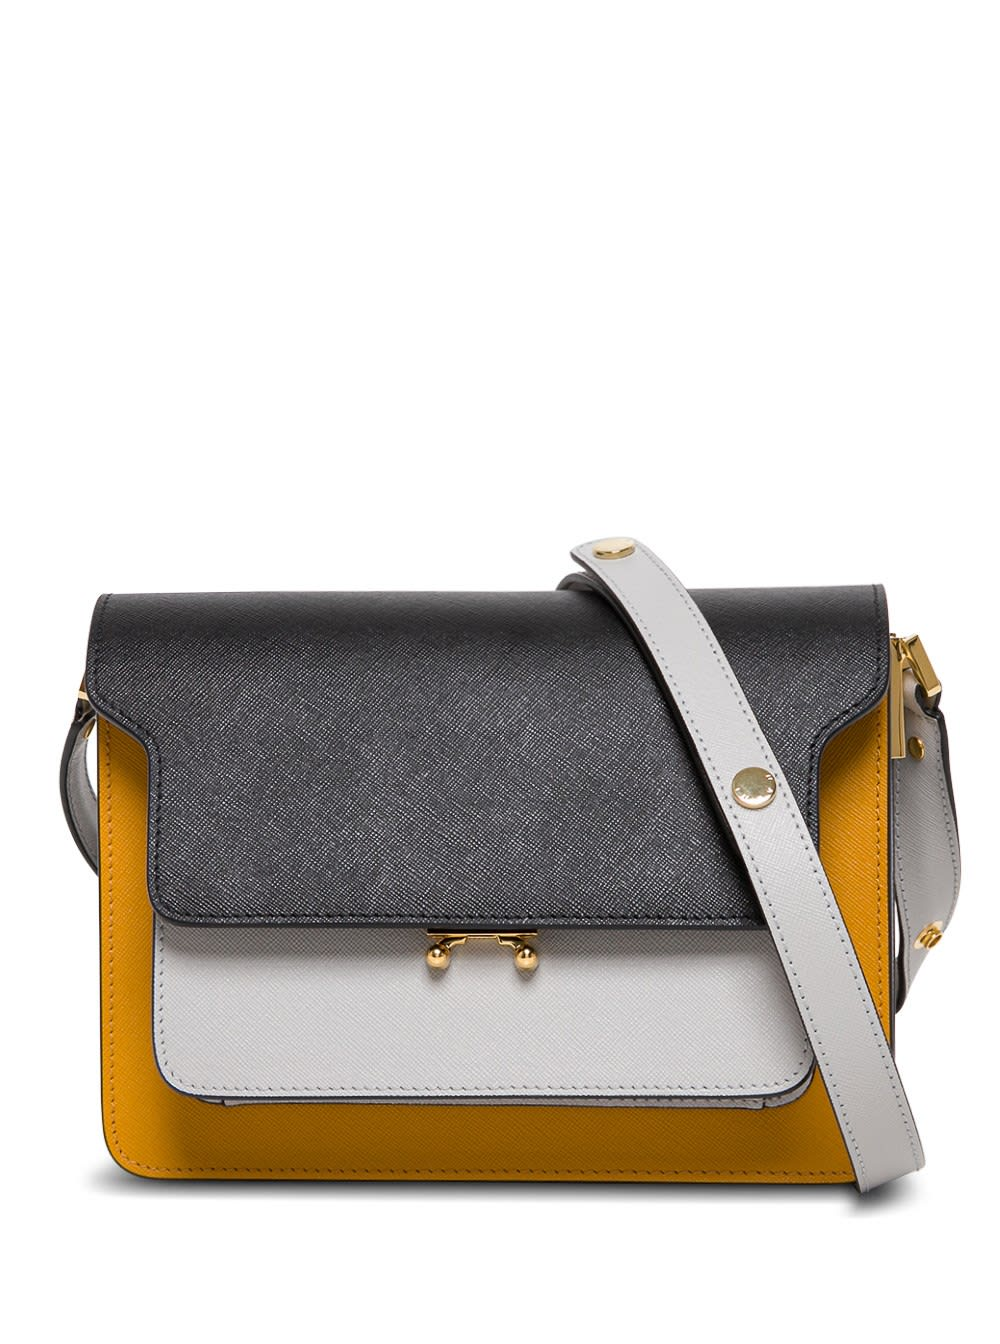 Marni Leathers TRUNK CROSSBODY BAG IN MULTICOLOR LEATHER